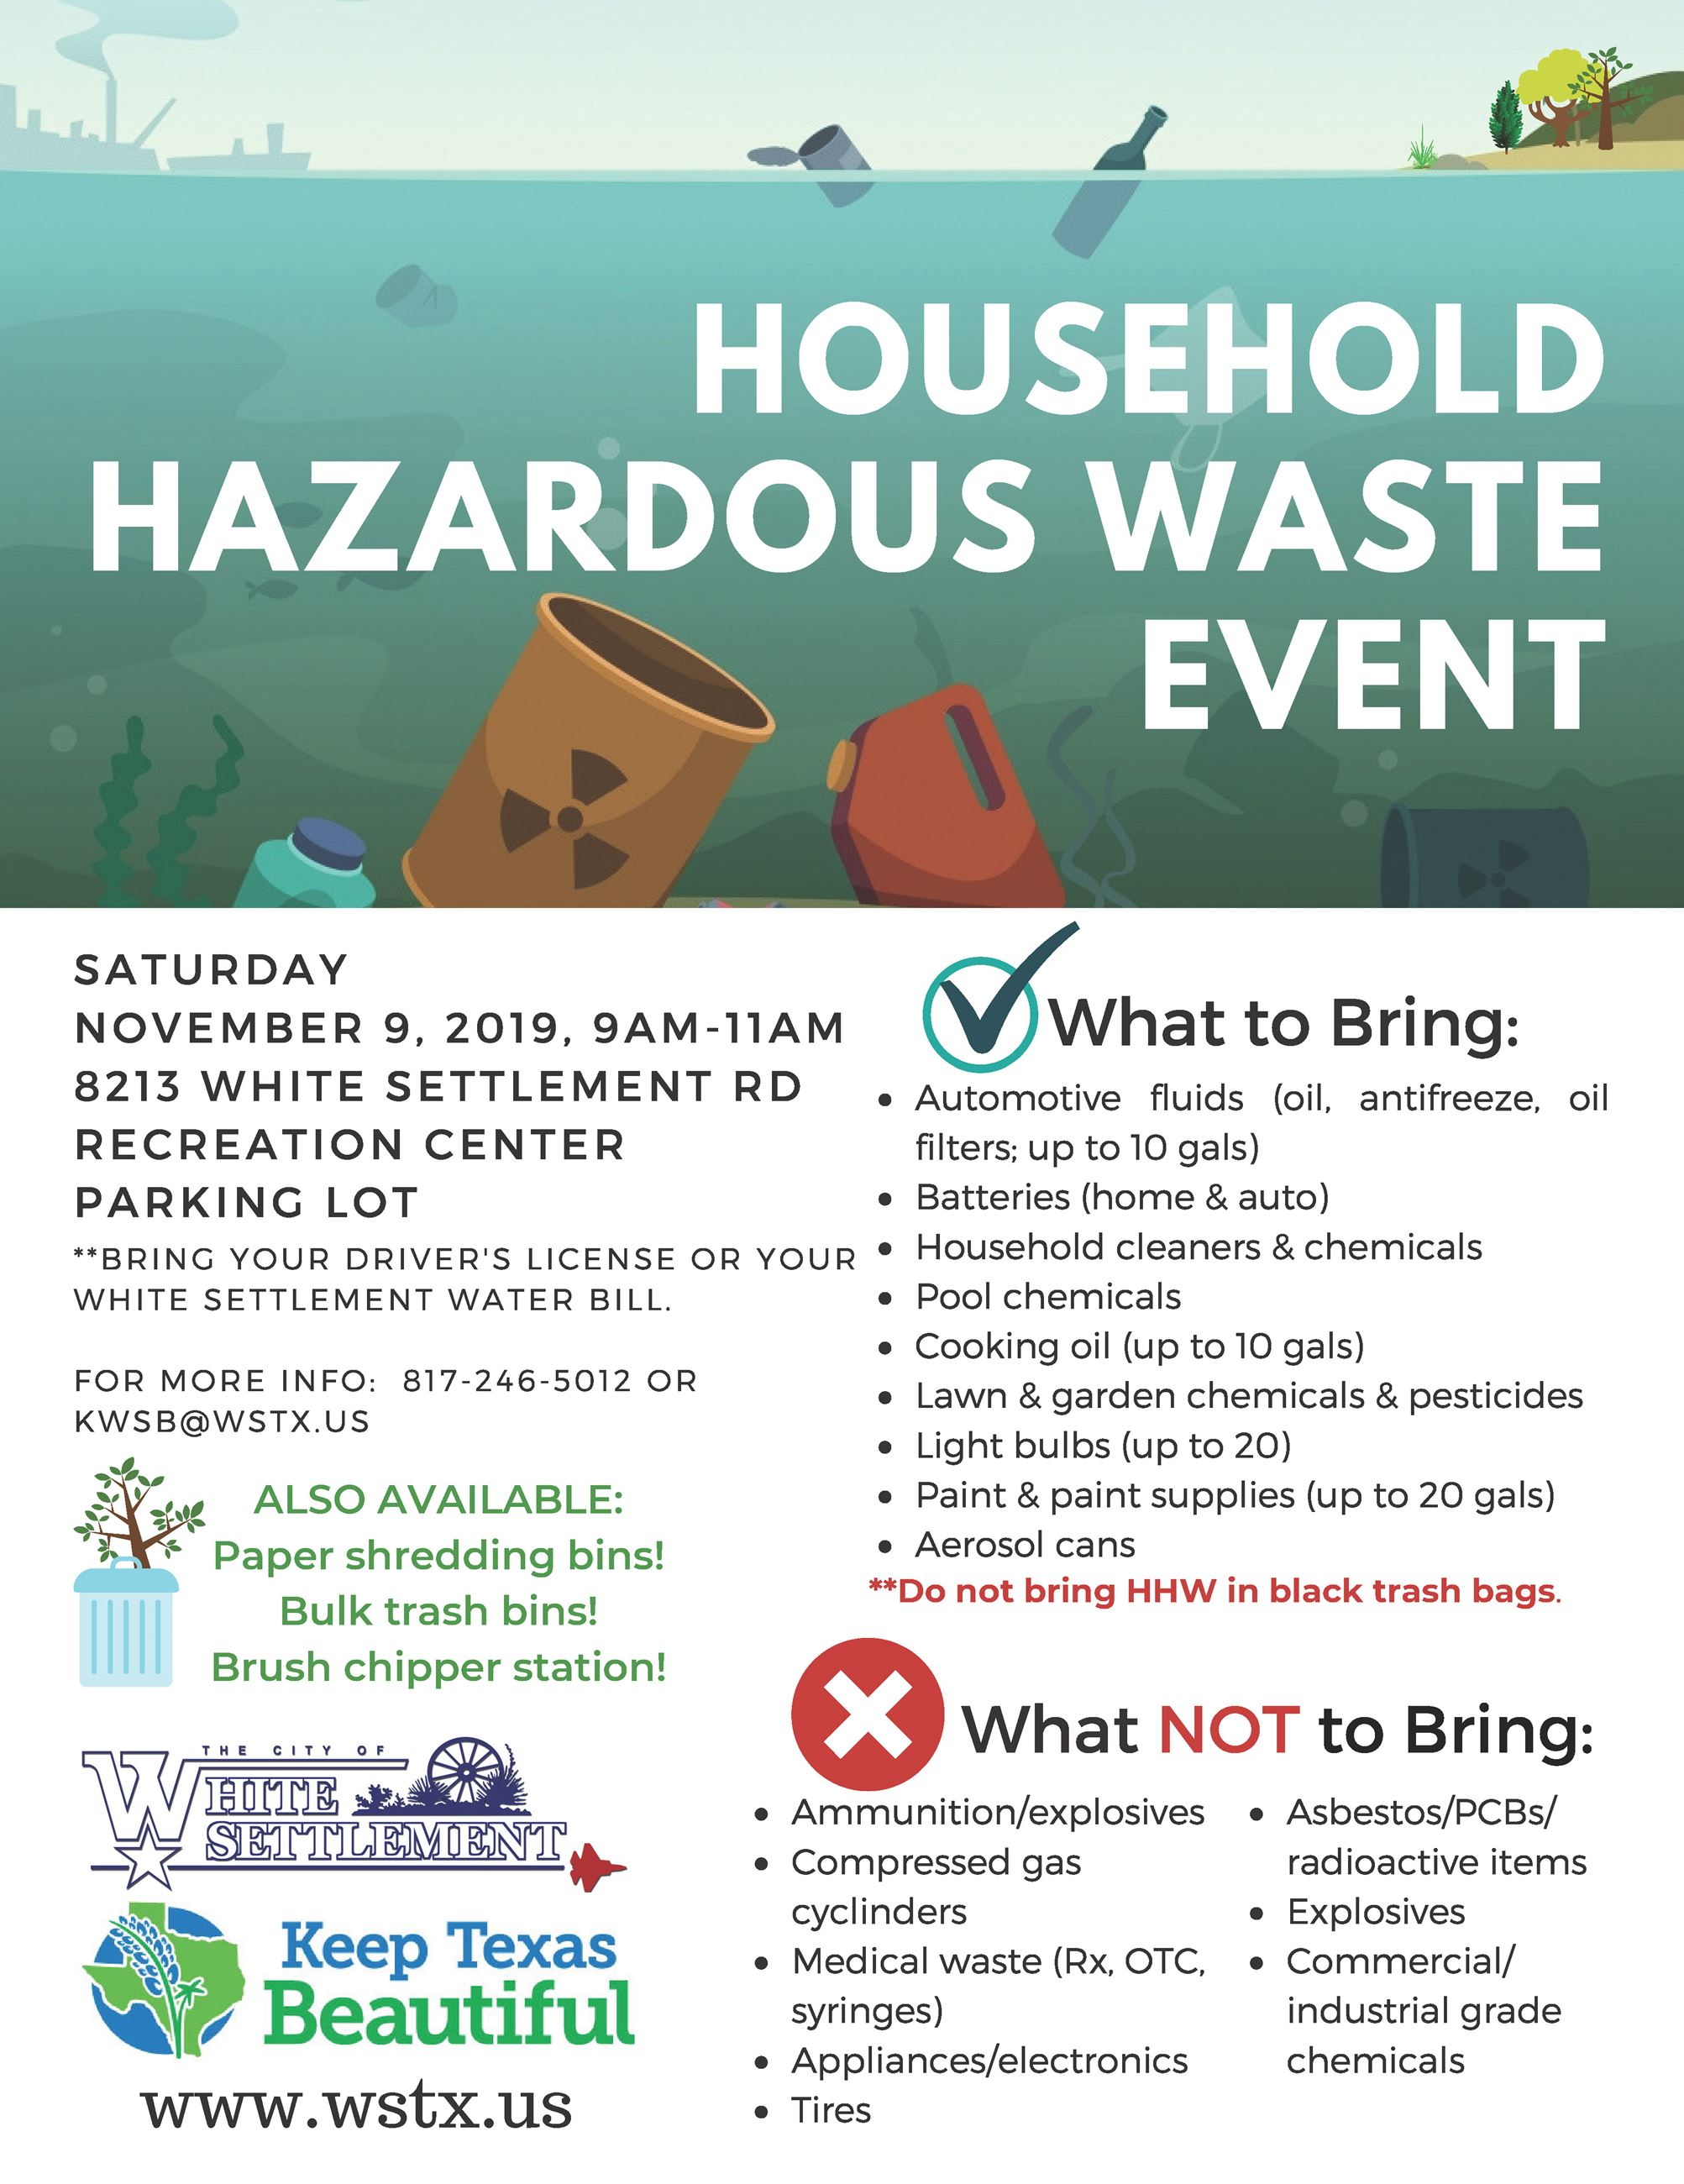 Household hazardous waste event list of acceptable items